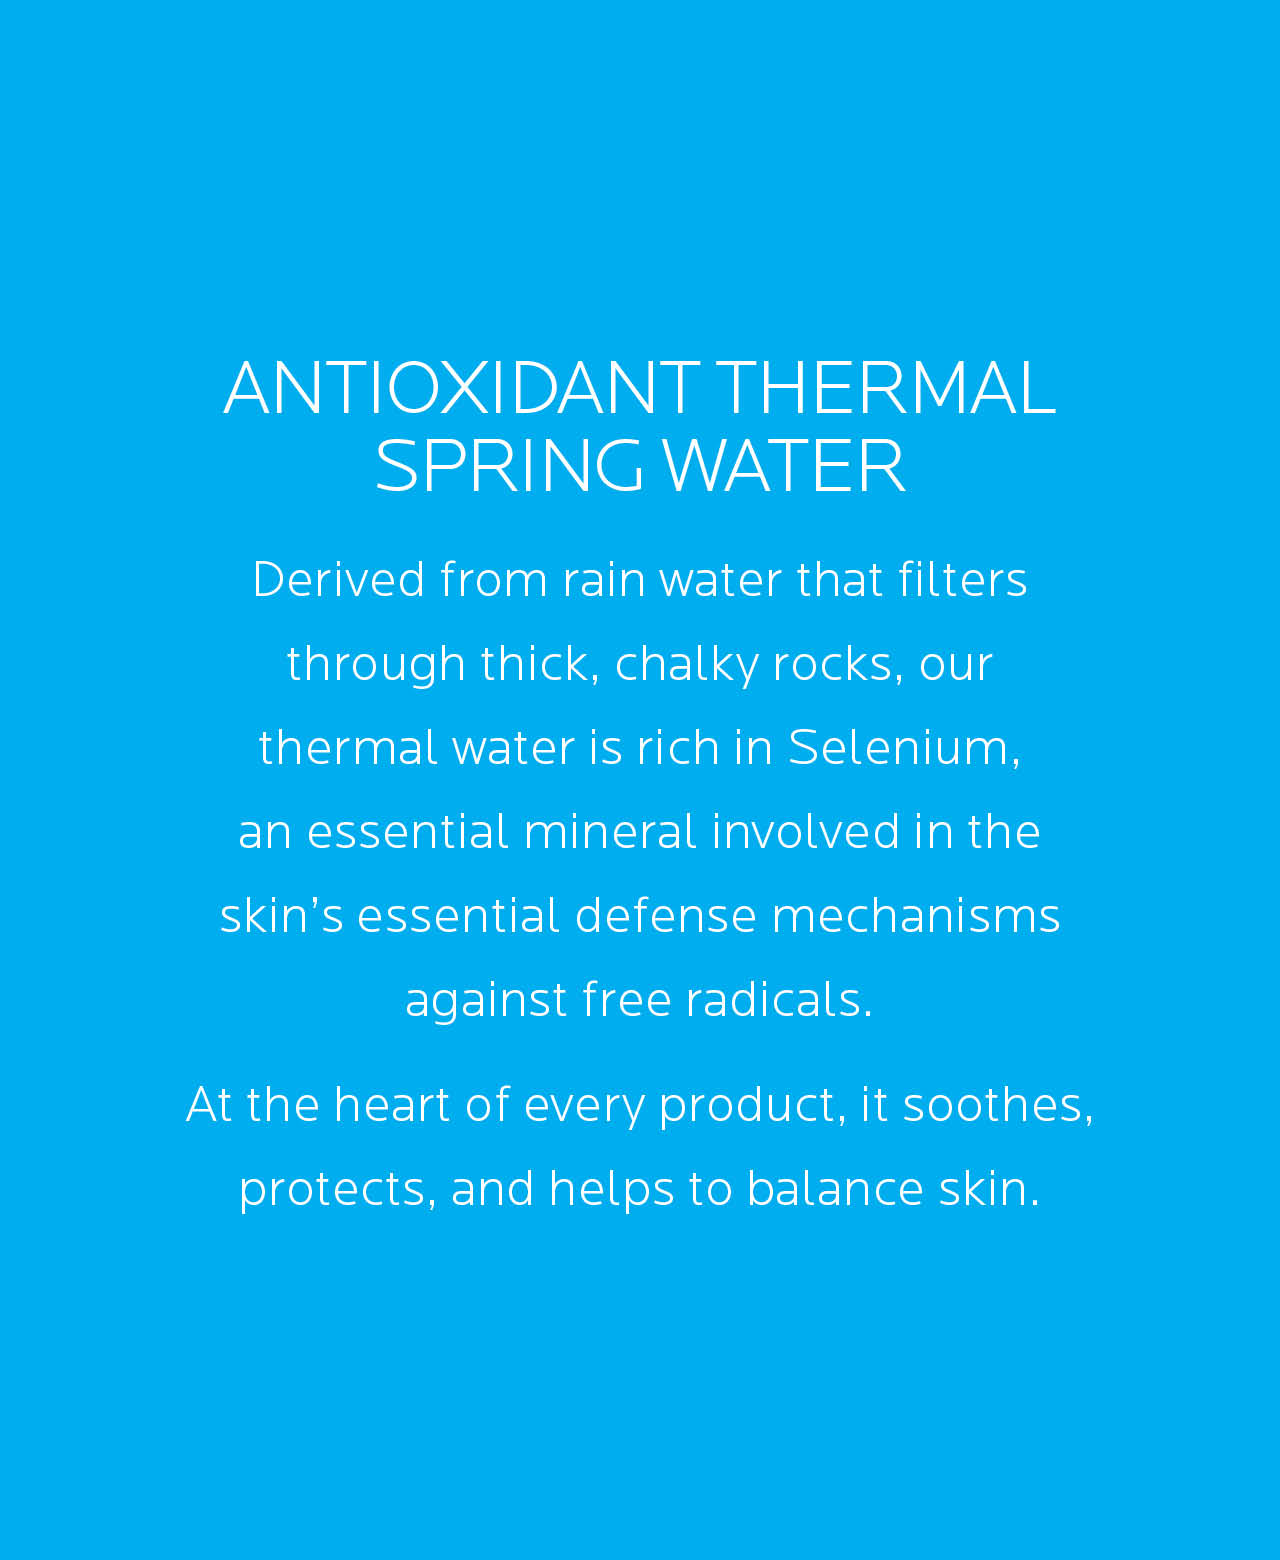 Antioxidant Thermal Spring Water